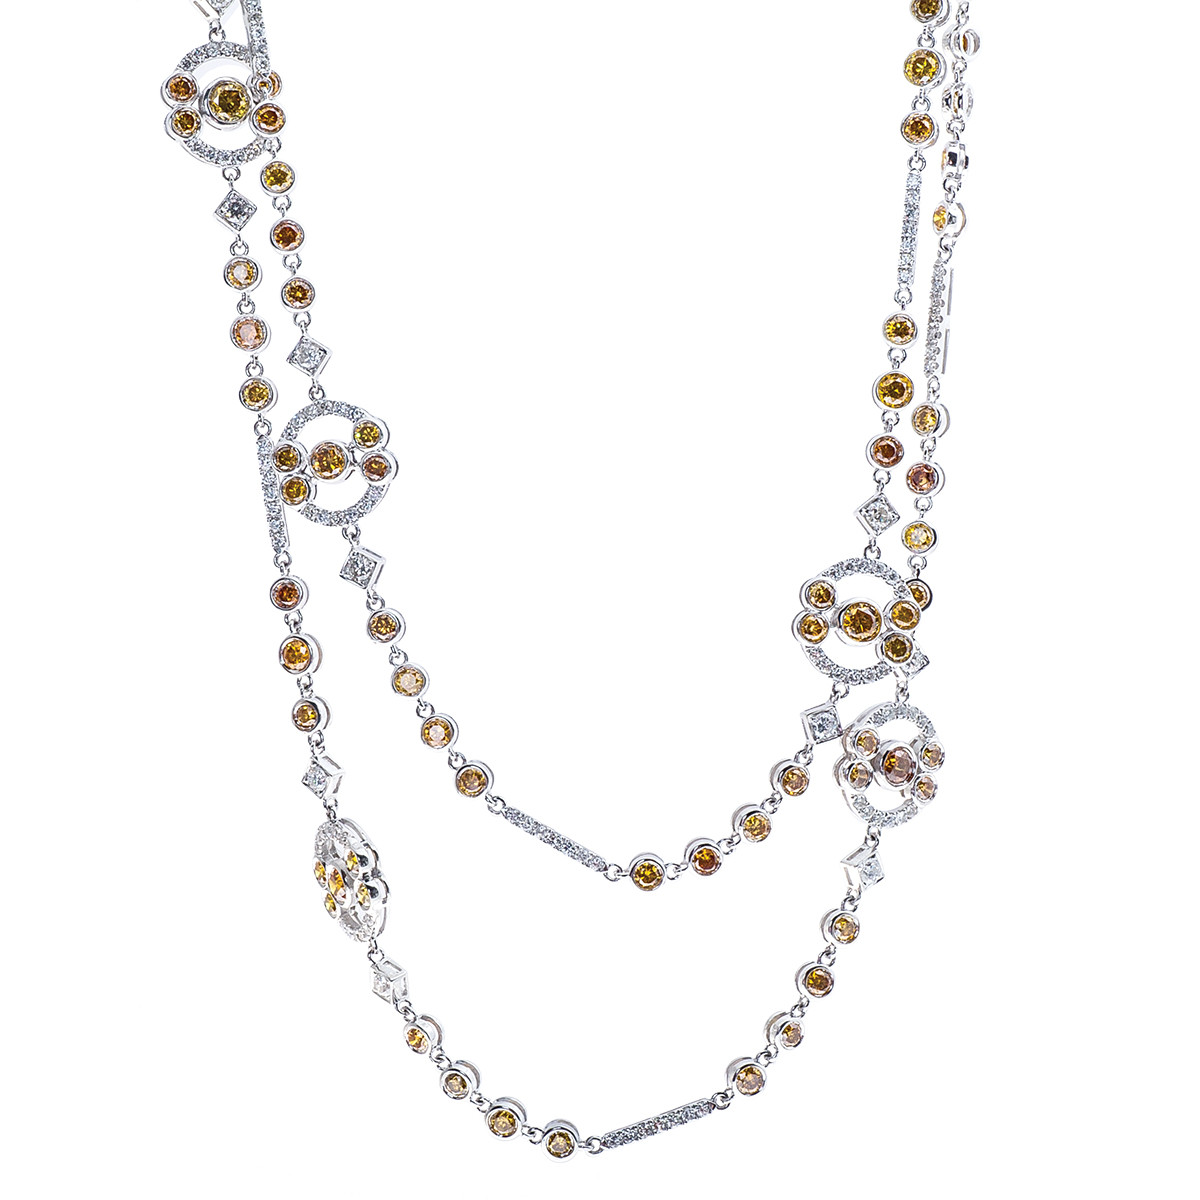 12.15 CTW Fancy Yellow & White Diamond Necklace